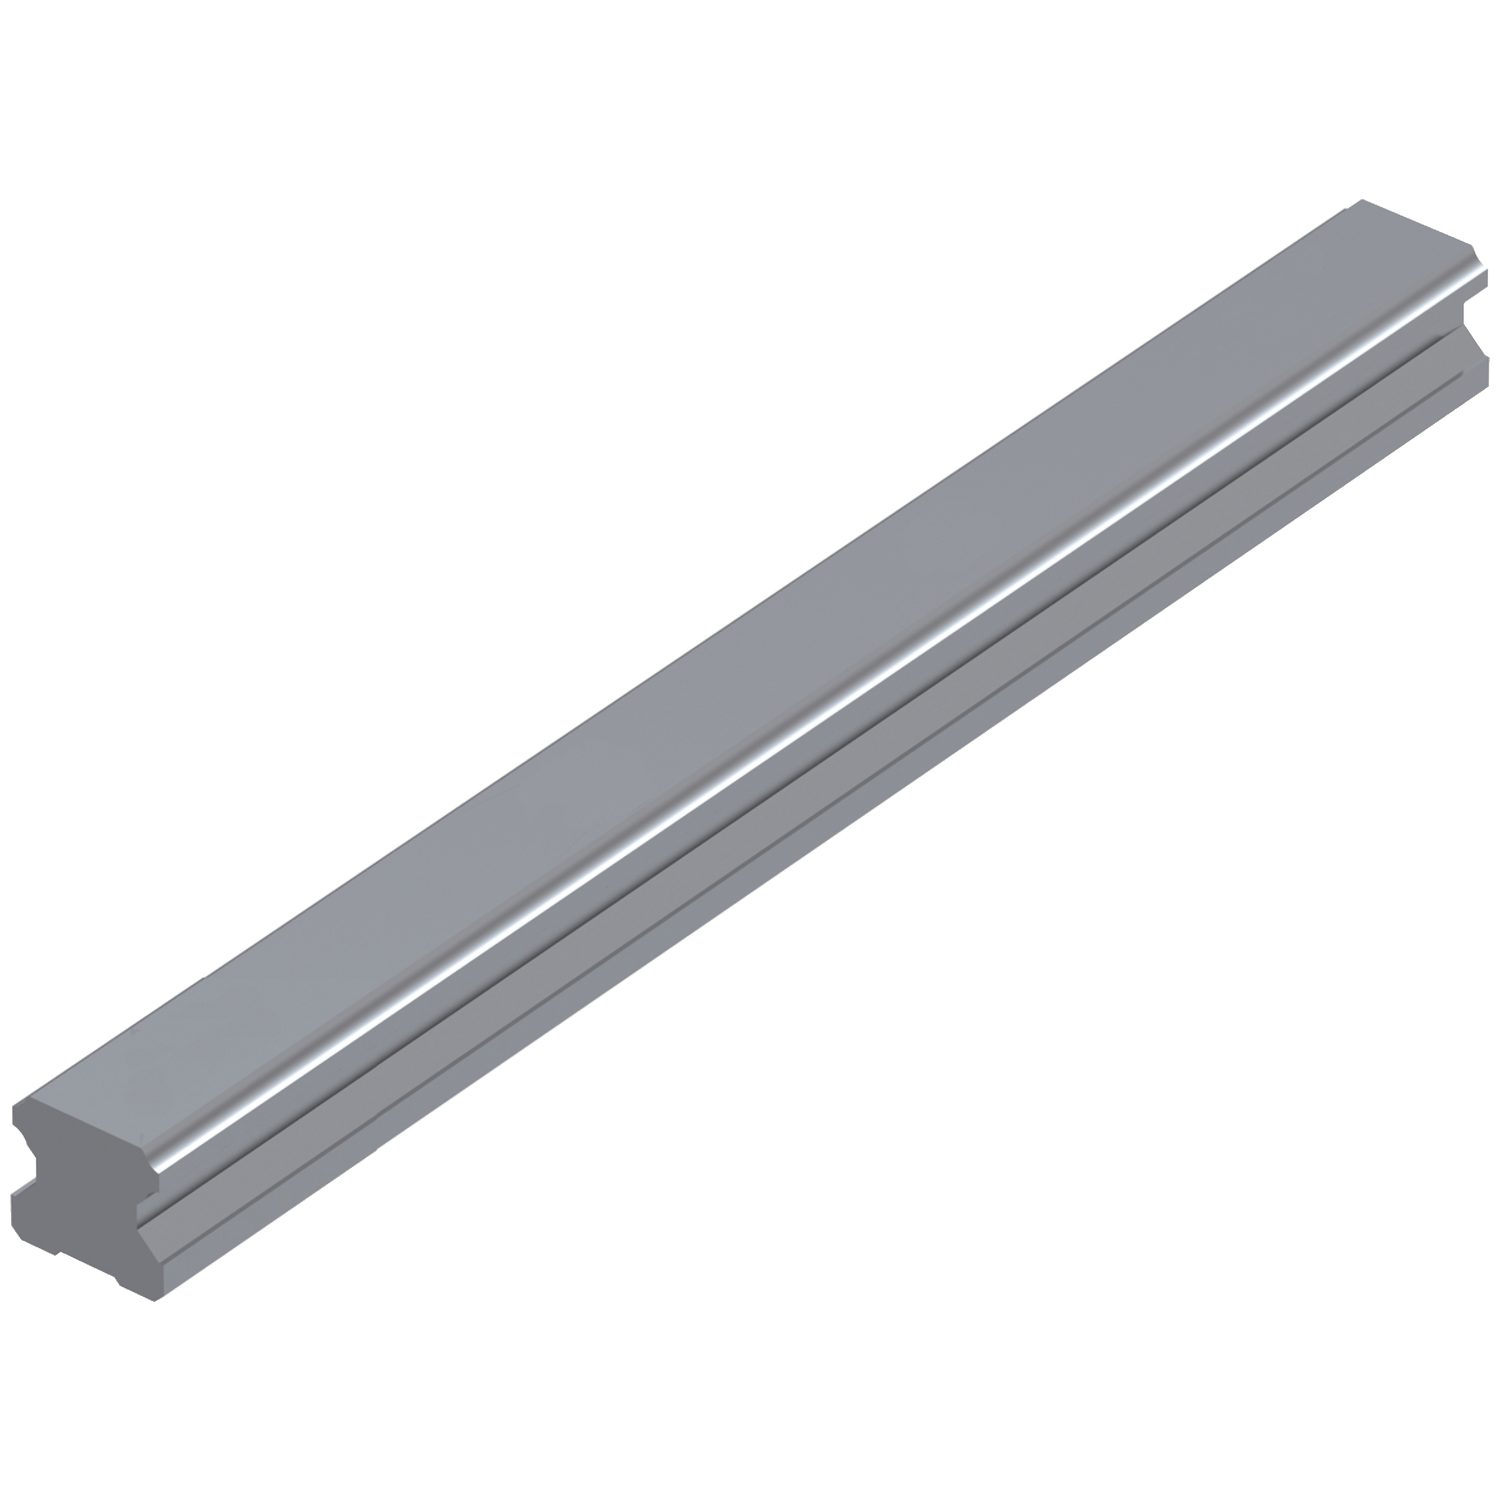 L1016.RF - 30mm Linear Guide Rail